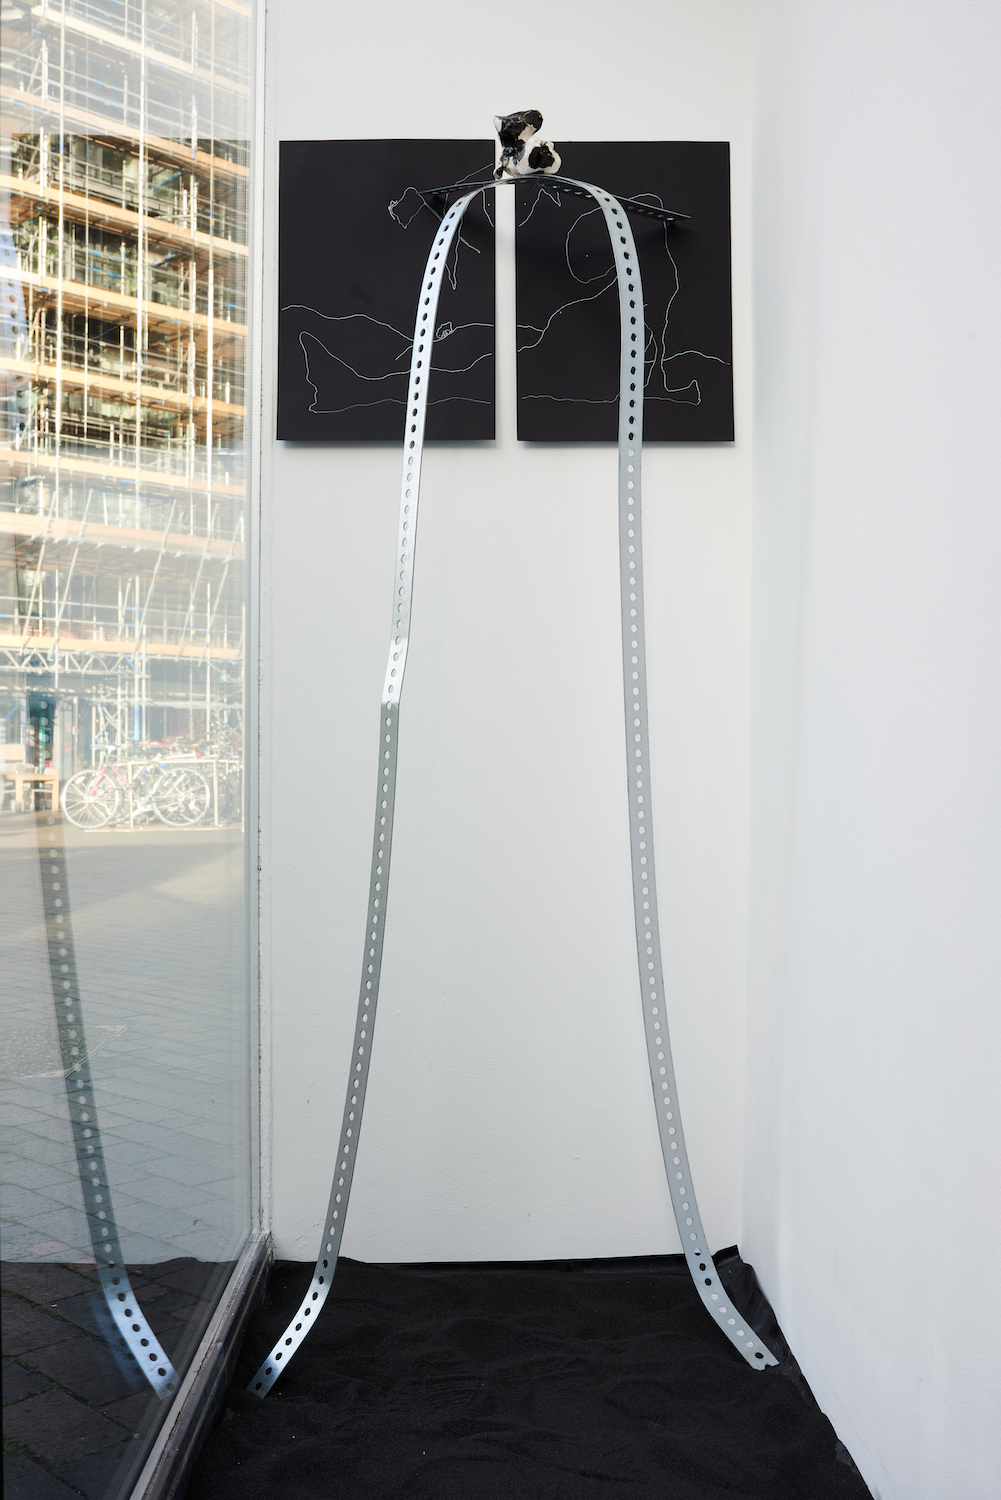 Sophie Jung, Whim Weeper (scytheless), 2021. Punched metal, 2 Ink on archival paper drawings, glazed ceramic. 160 x 60 x 50 cm. Unique. Photographer: Jonathan Bassett.